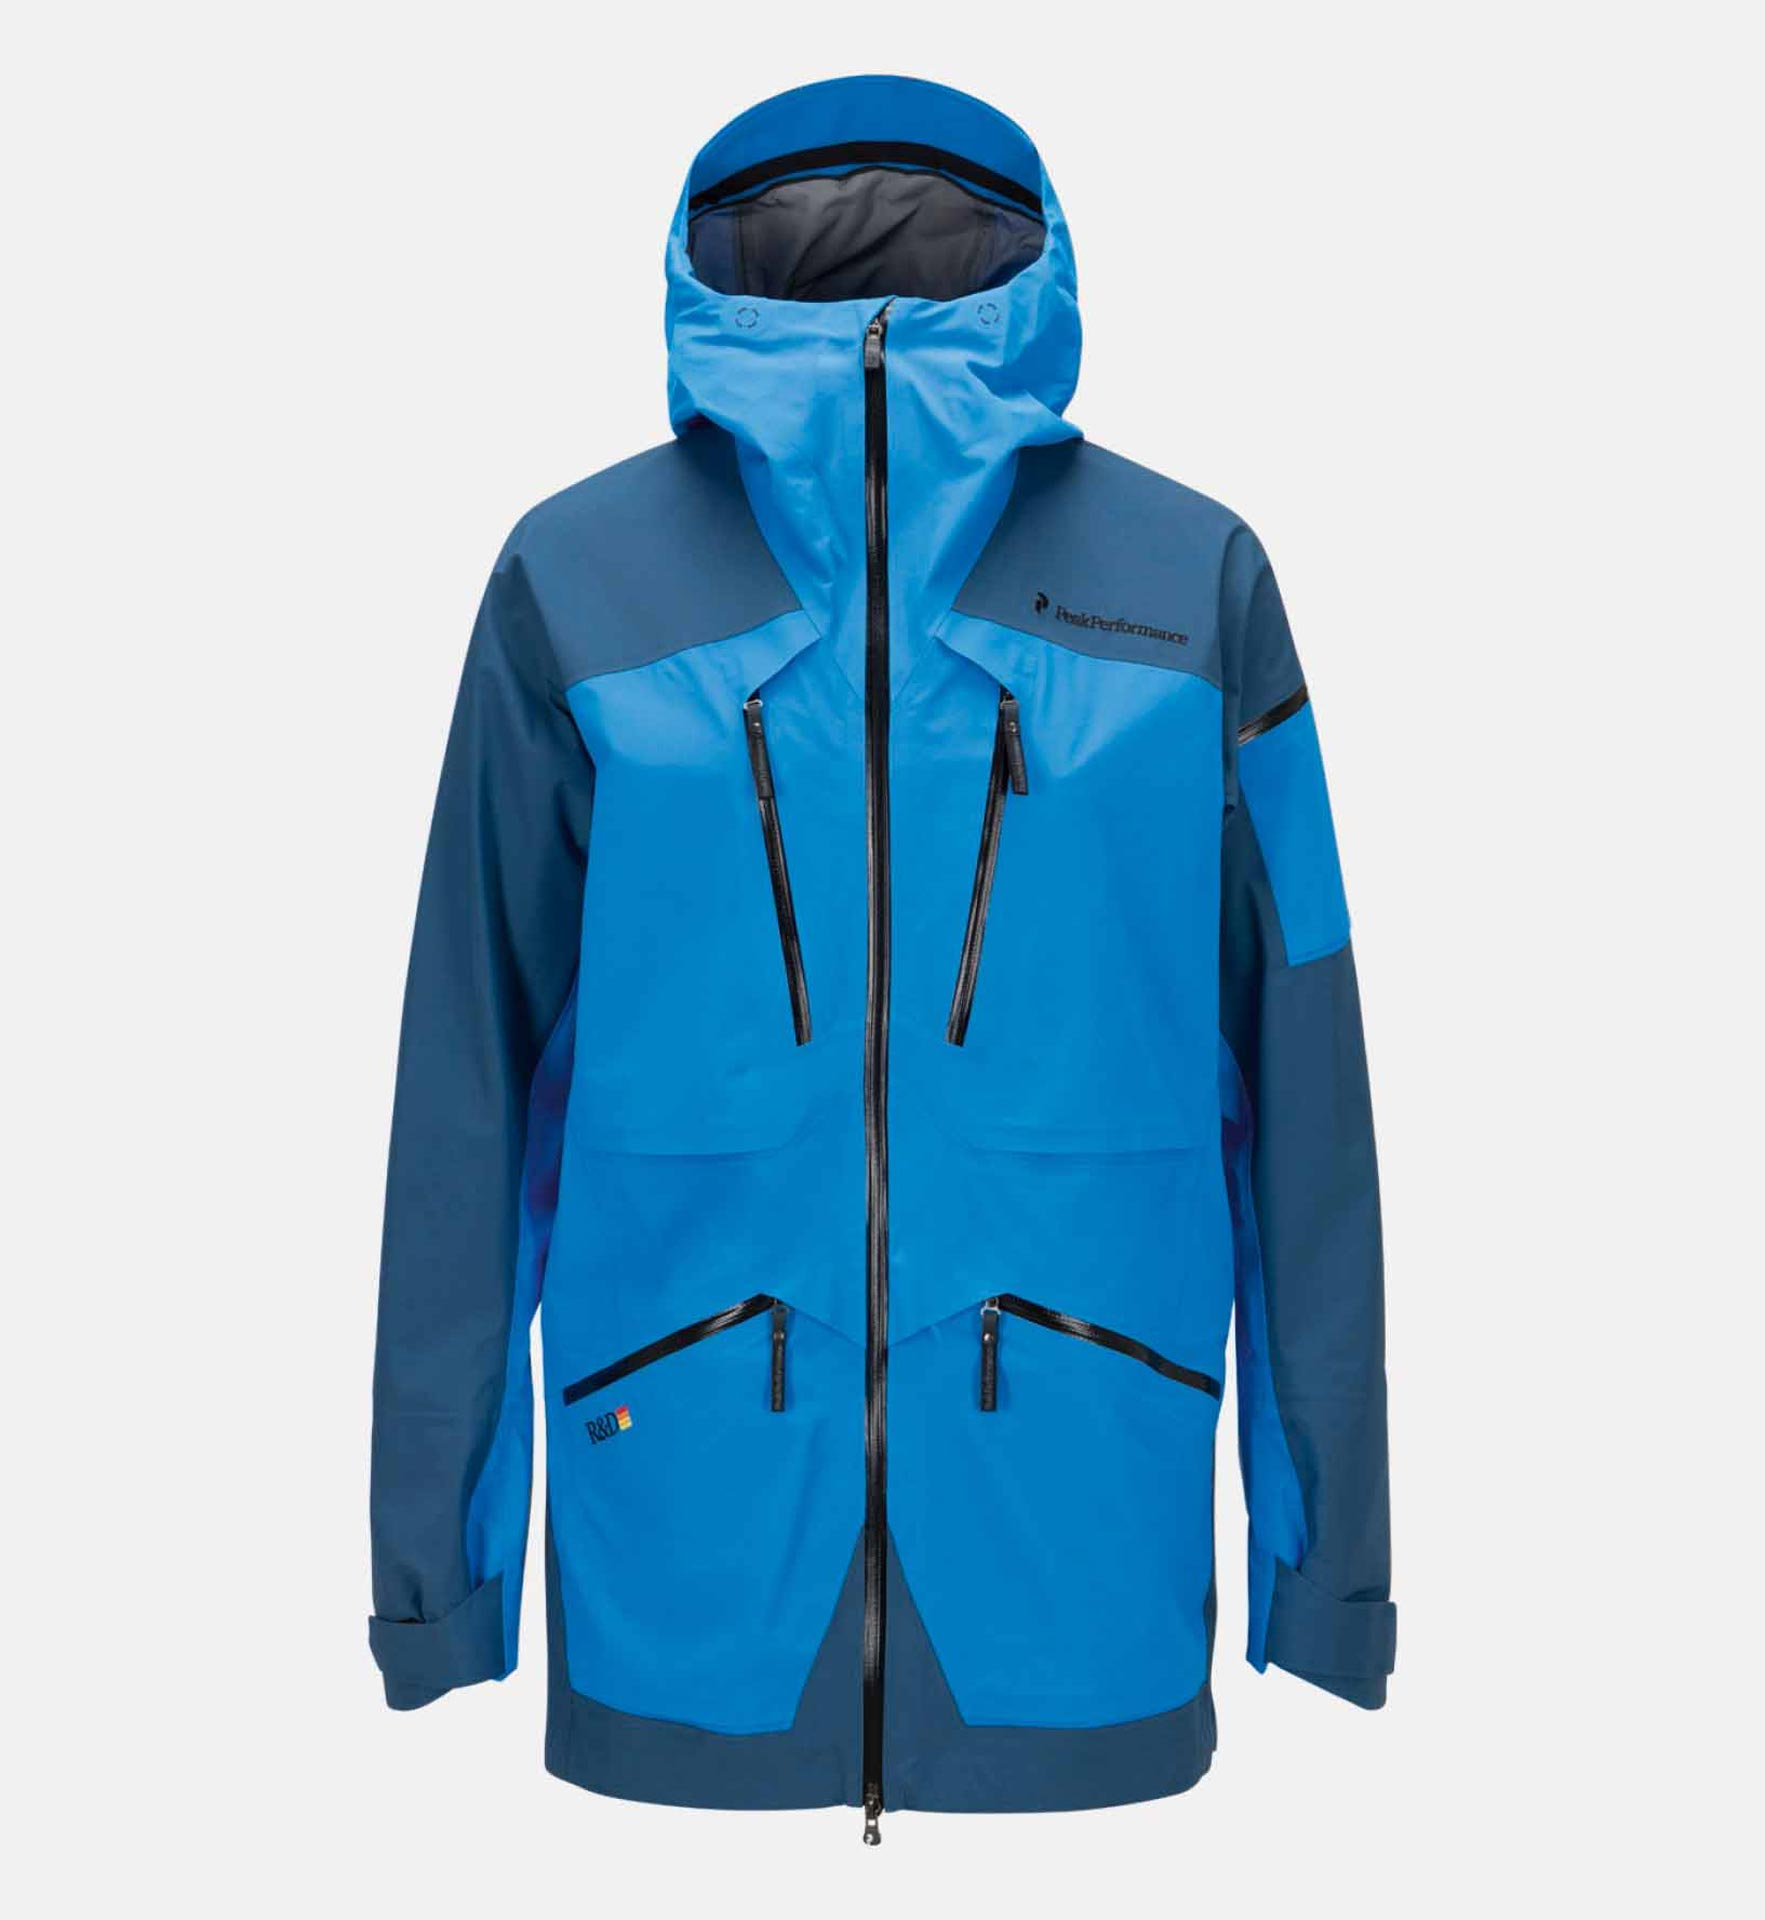 Peak Performance: Heli Vertical Jacket